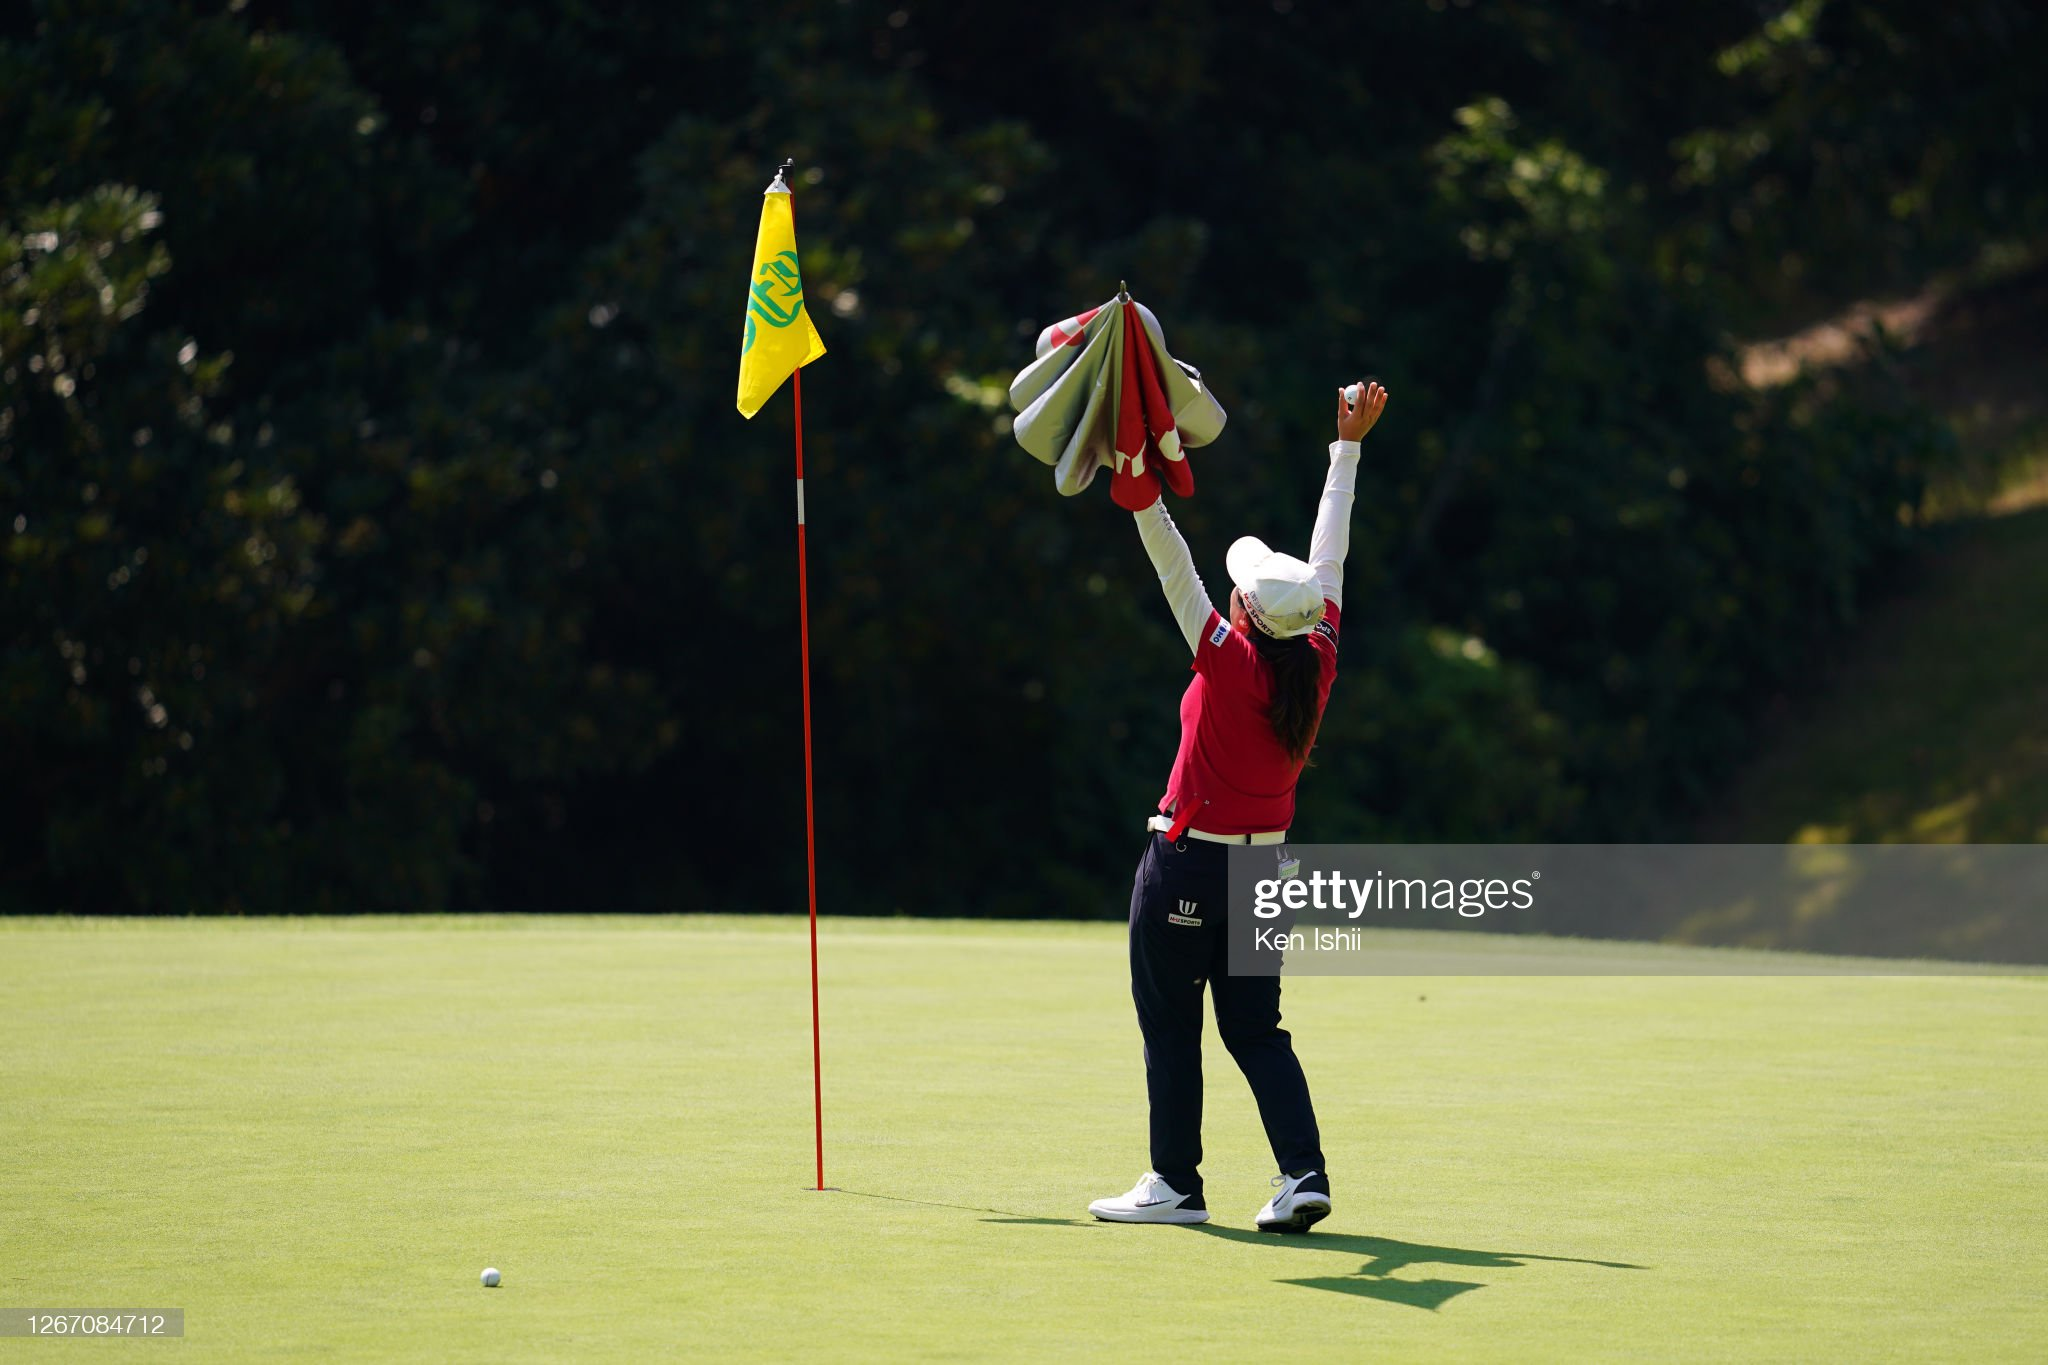 https://media.gettyimages.com/photos/peiying-tsai-of-chinese-taipei-celebrates-the-eagle-on-the-18th-green-picture-id1267084712?s=2048x2048